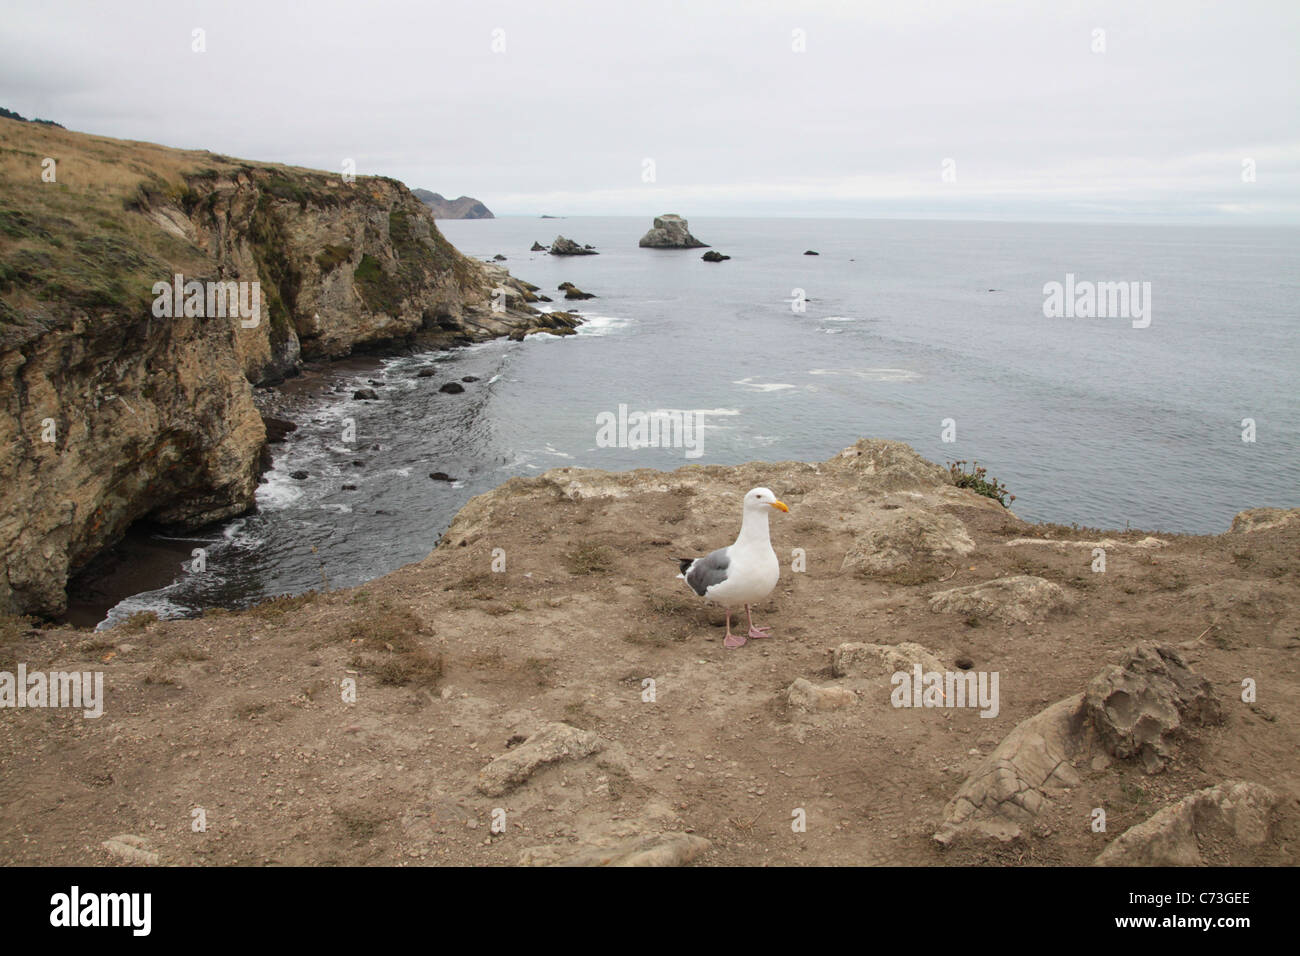 A seagull standing on the edge of a cliff in Point Reyes, California. - Stock Image